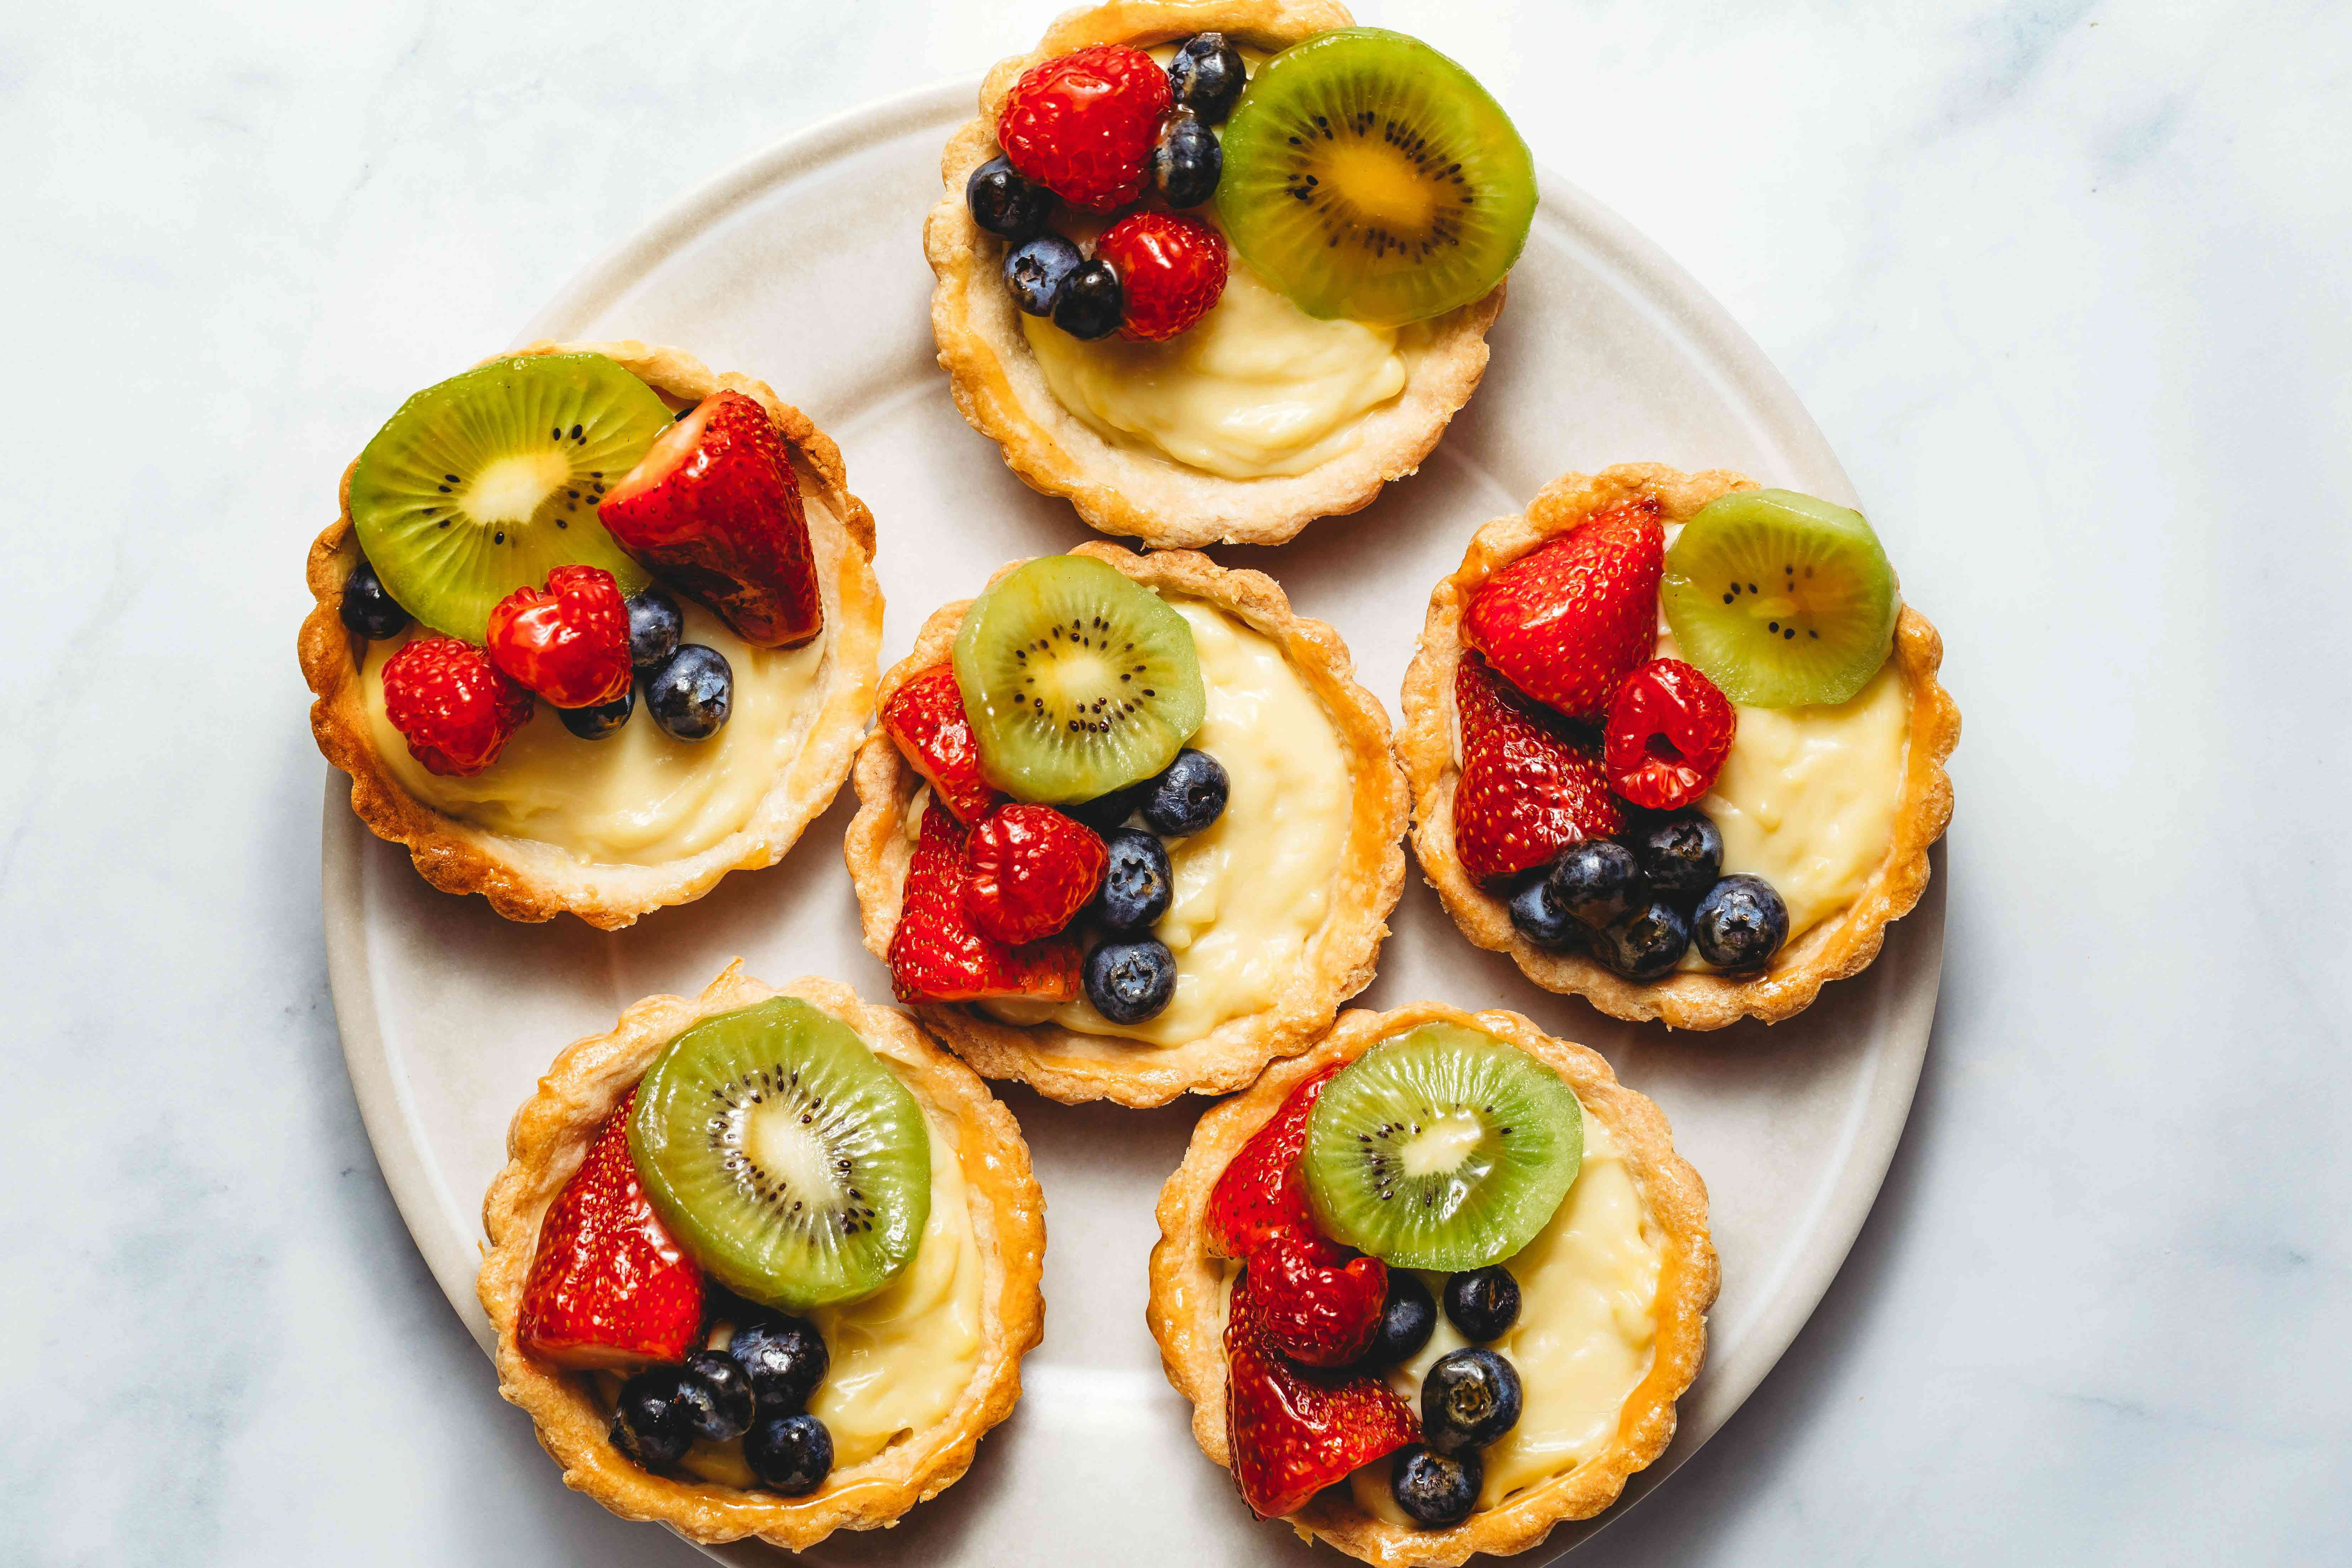 Fruit Tart With Pastry Cream Filling